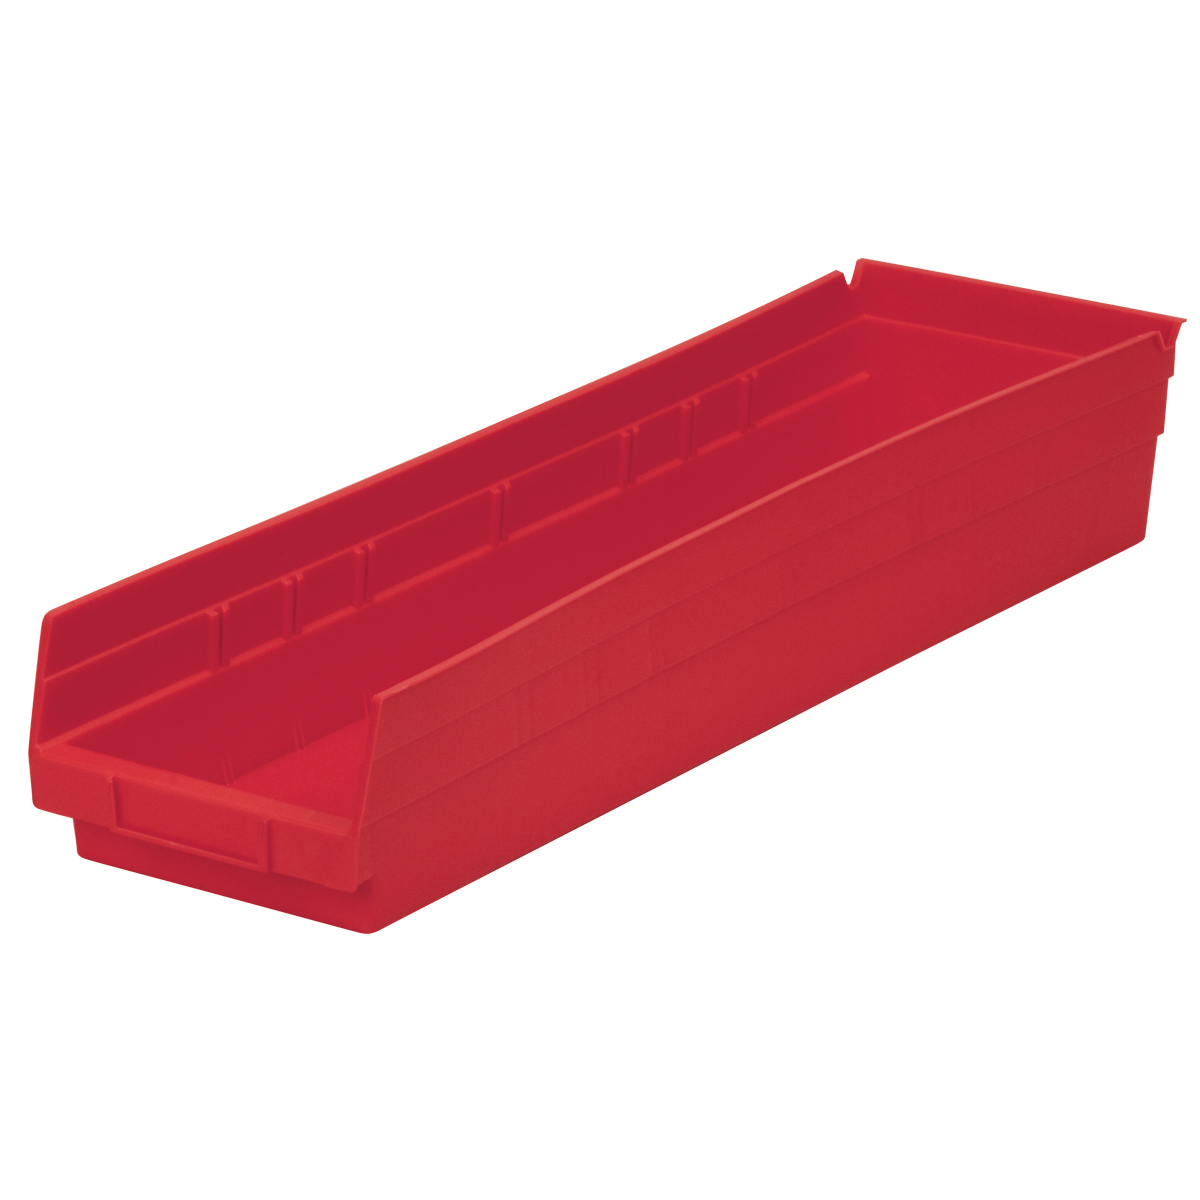 Shelf Bin 23-5/8 x 6-5/8 x 4, Red (30164RED).  This item sold in carton quantities of 6.